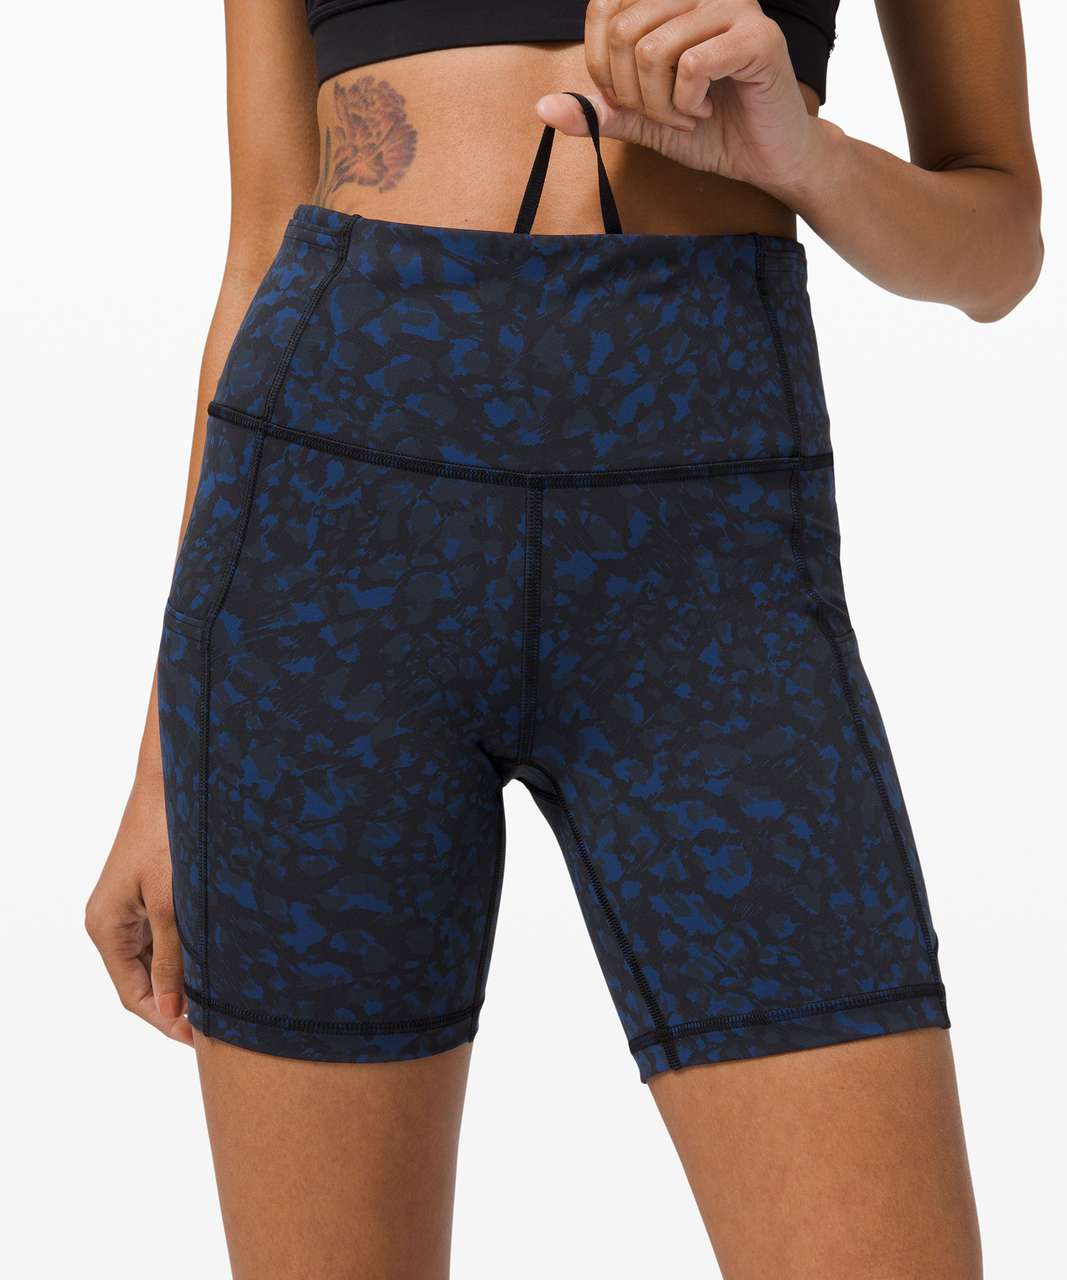 "Lululemon Fast and Free Short 6"" *Non-Reflective - Wild Thing Camo Larkspur Multi"